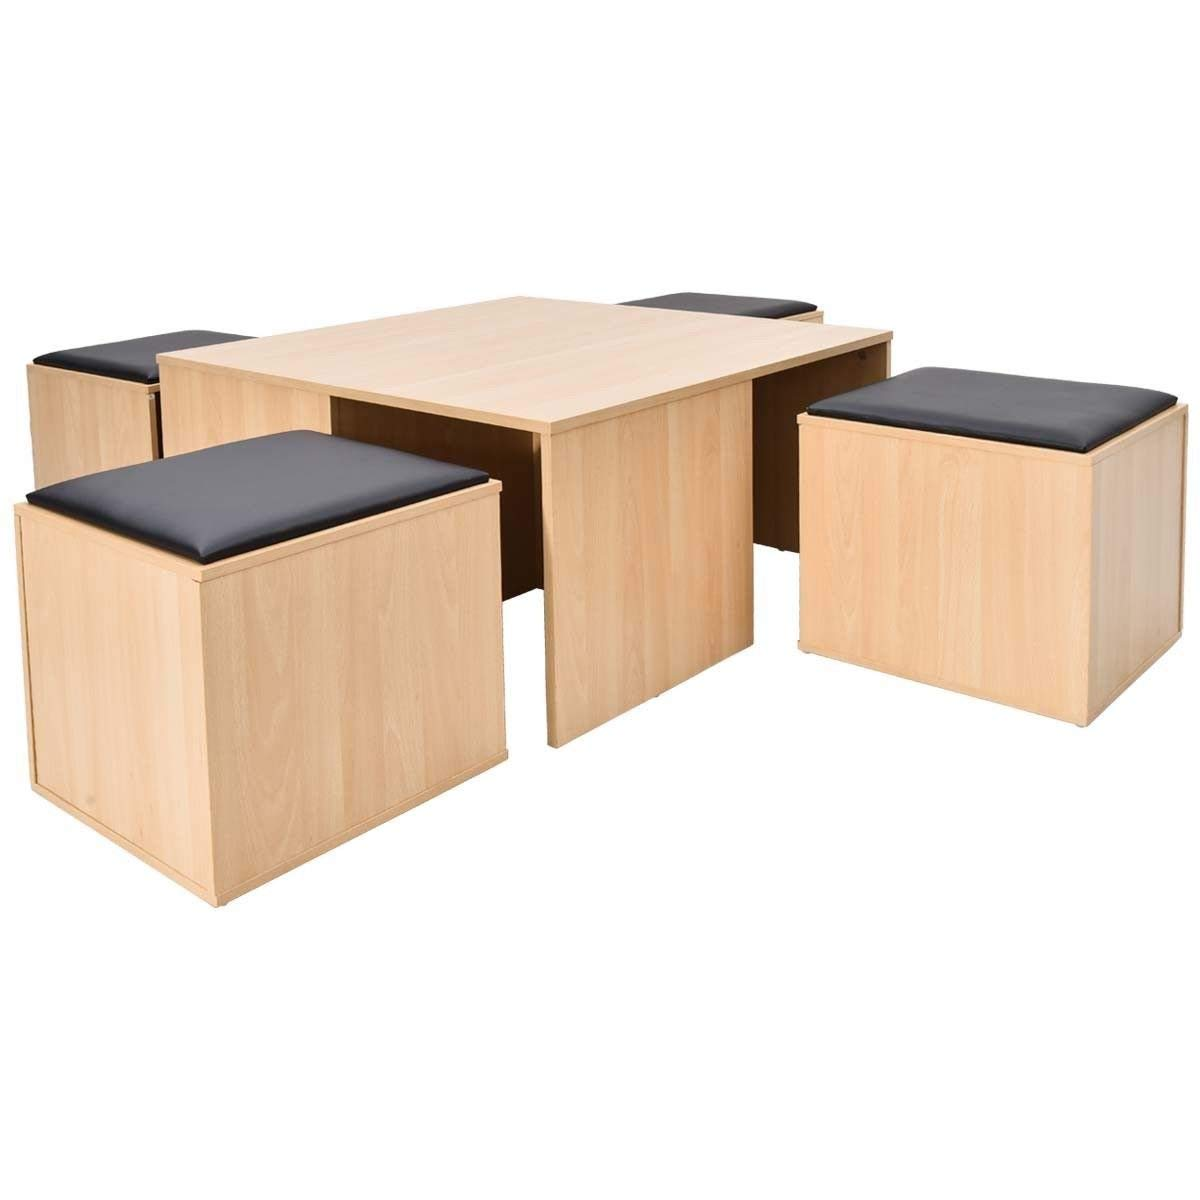 Giantex 5 Pcs Dining Table and Chair Set Wooden Dinette Table Set W/ 4 Storage Ottoman Stools for Living Room Dining Room Home Furniture Coffee Table and Chair Set (Nutural)